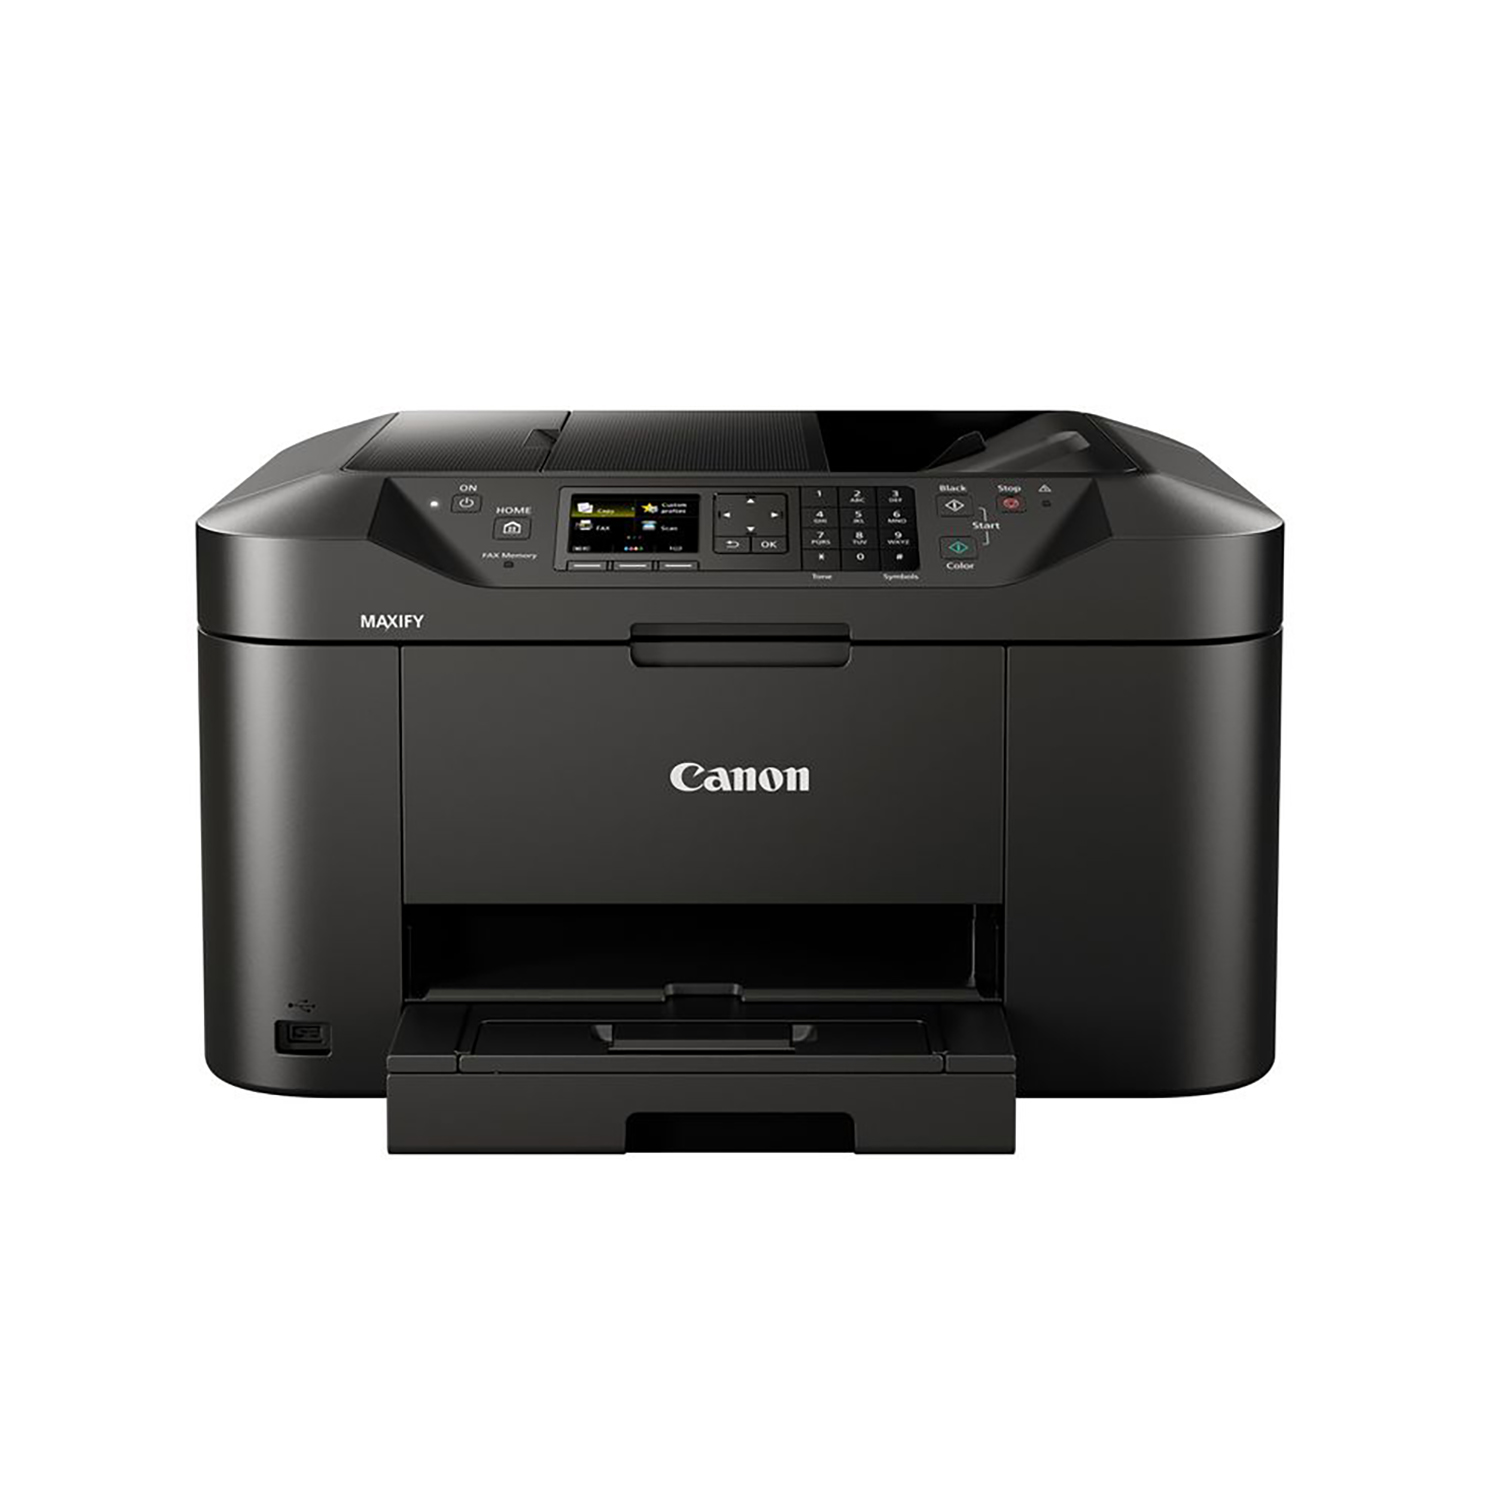 Multifunctional Machines Canon Maxify MB2155 Multifunction Inkjet A4 Printer Black Ref 0959C028